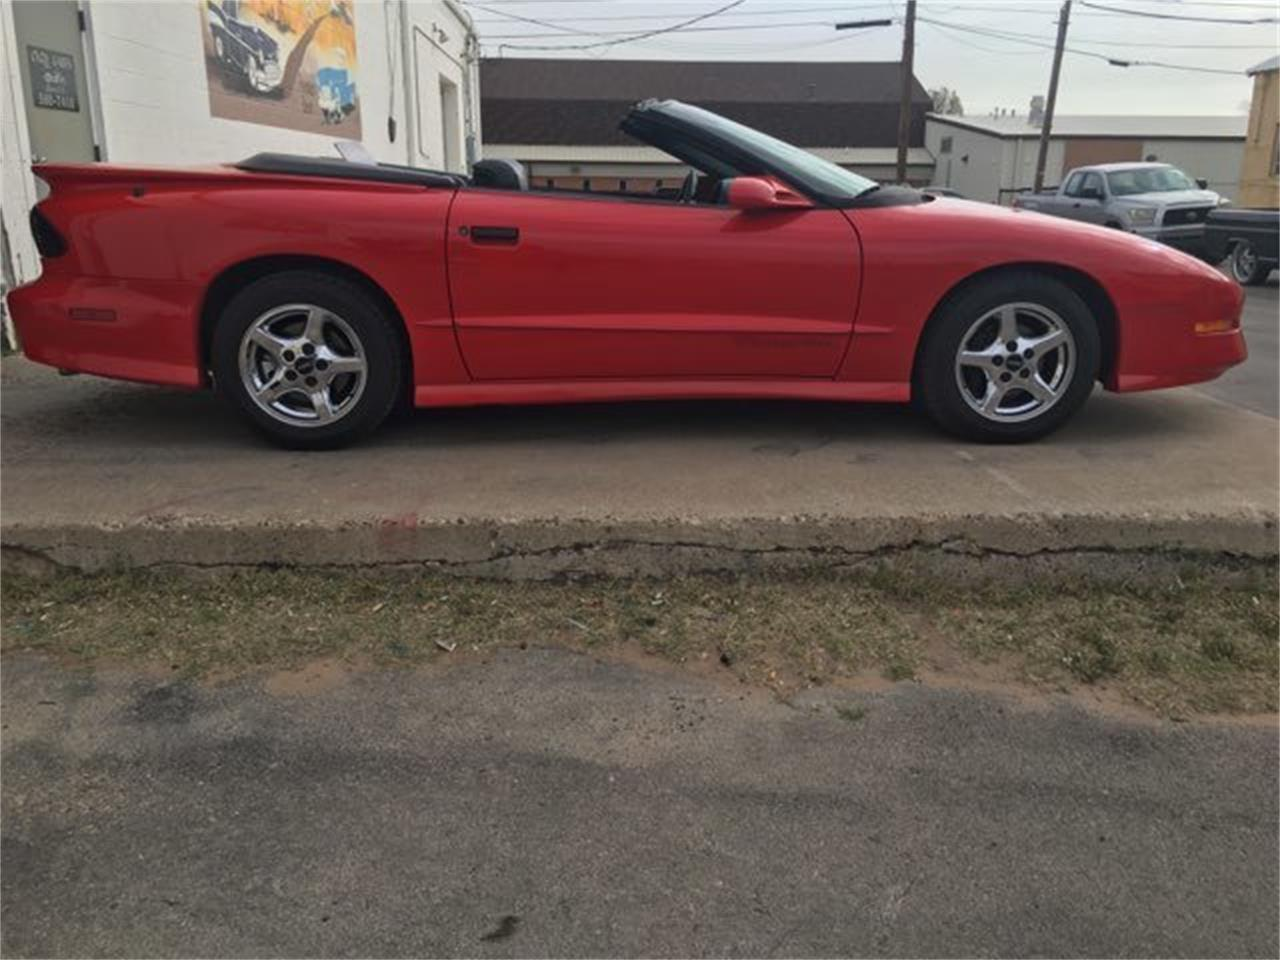 Large Picture of '96 Pontiac Firebird Trans Am located in Midland Texas Auction Vehicle Offered by Dan Kruse Classics - PWBI